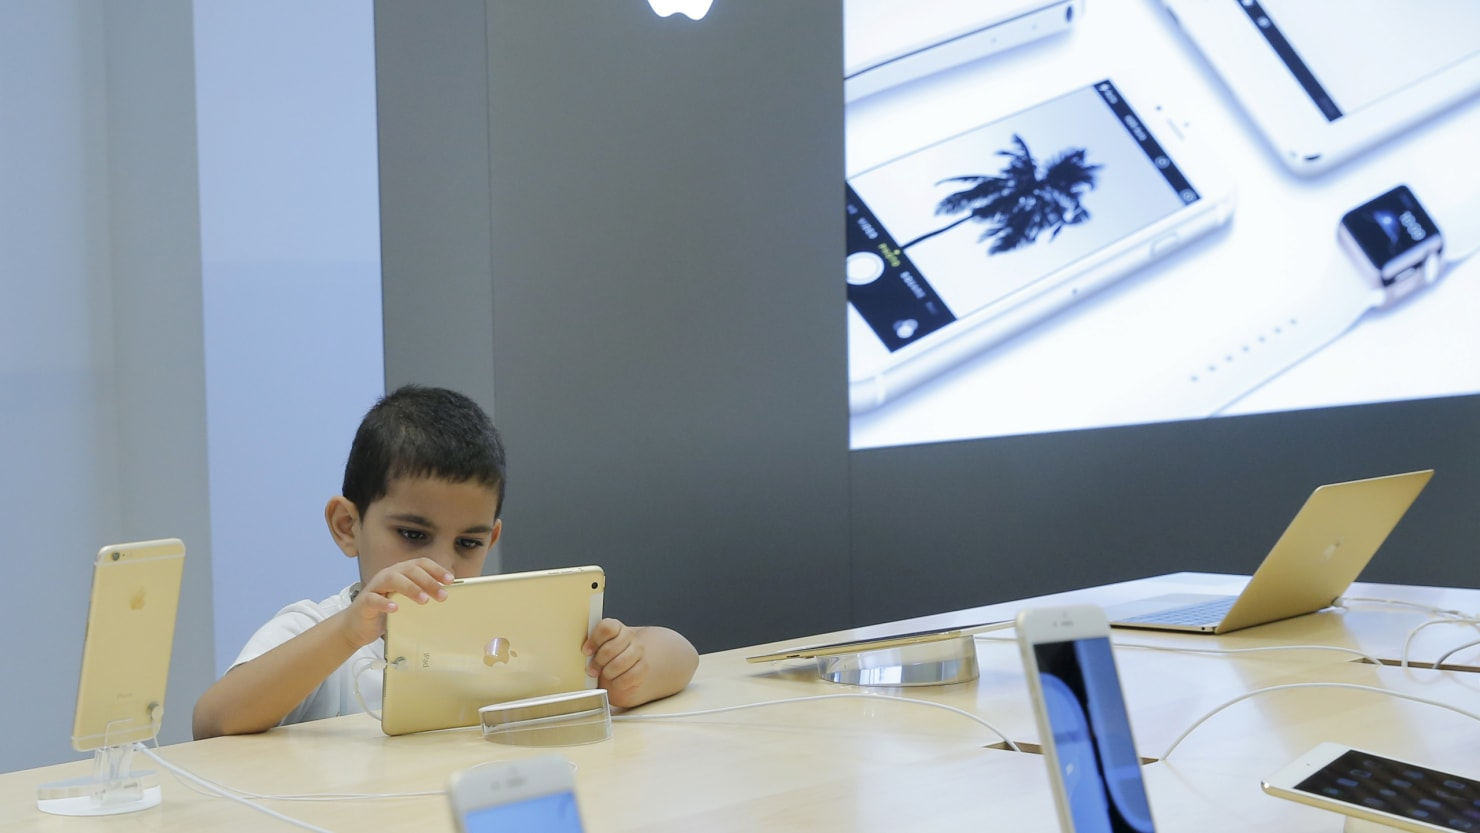 Screen Time More Than Doubled for Babies Between 1997 and 2014: Study